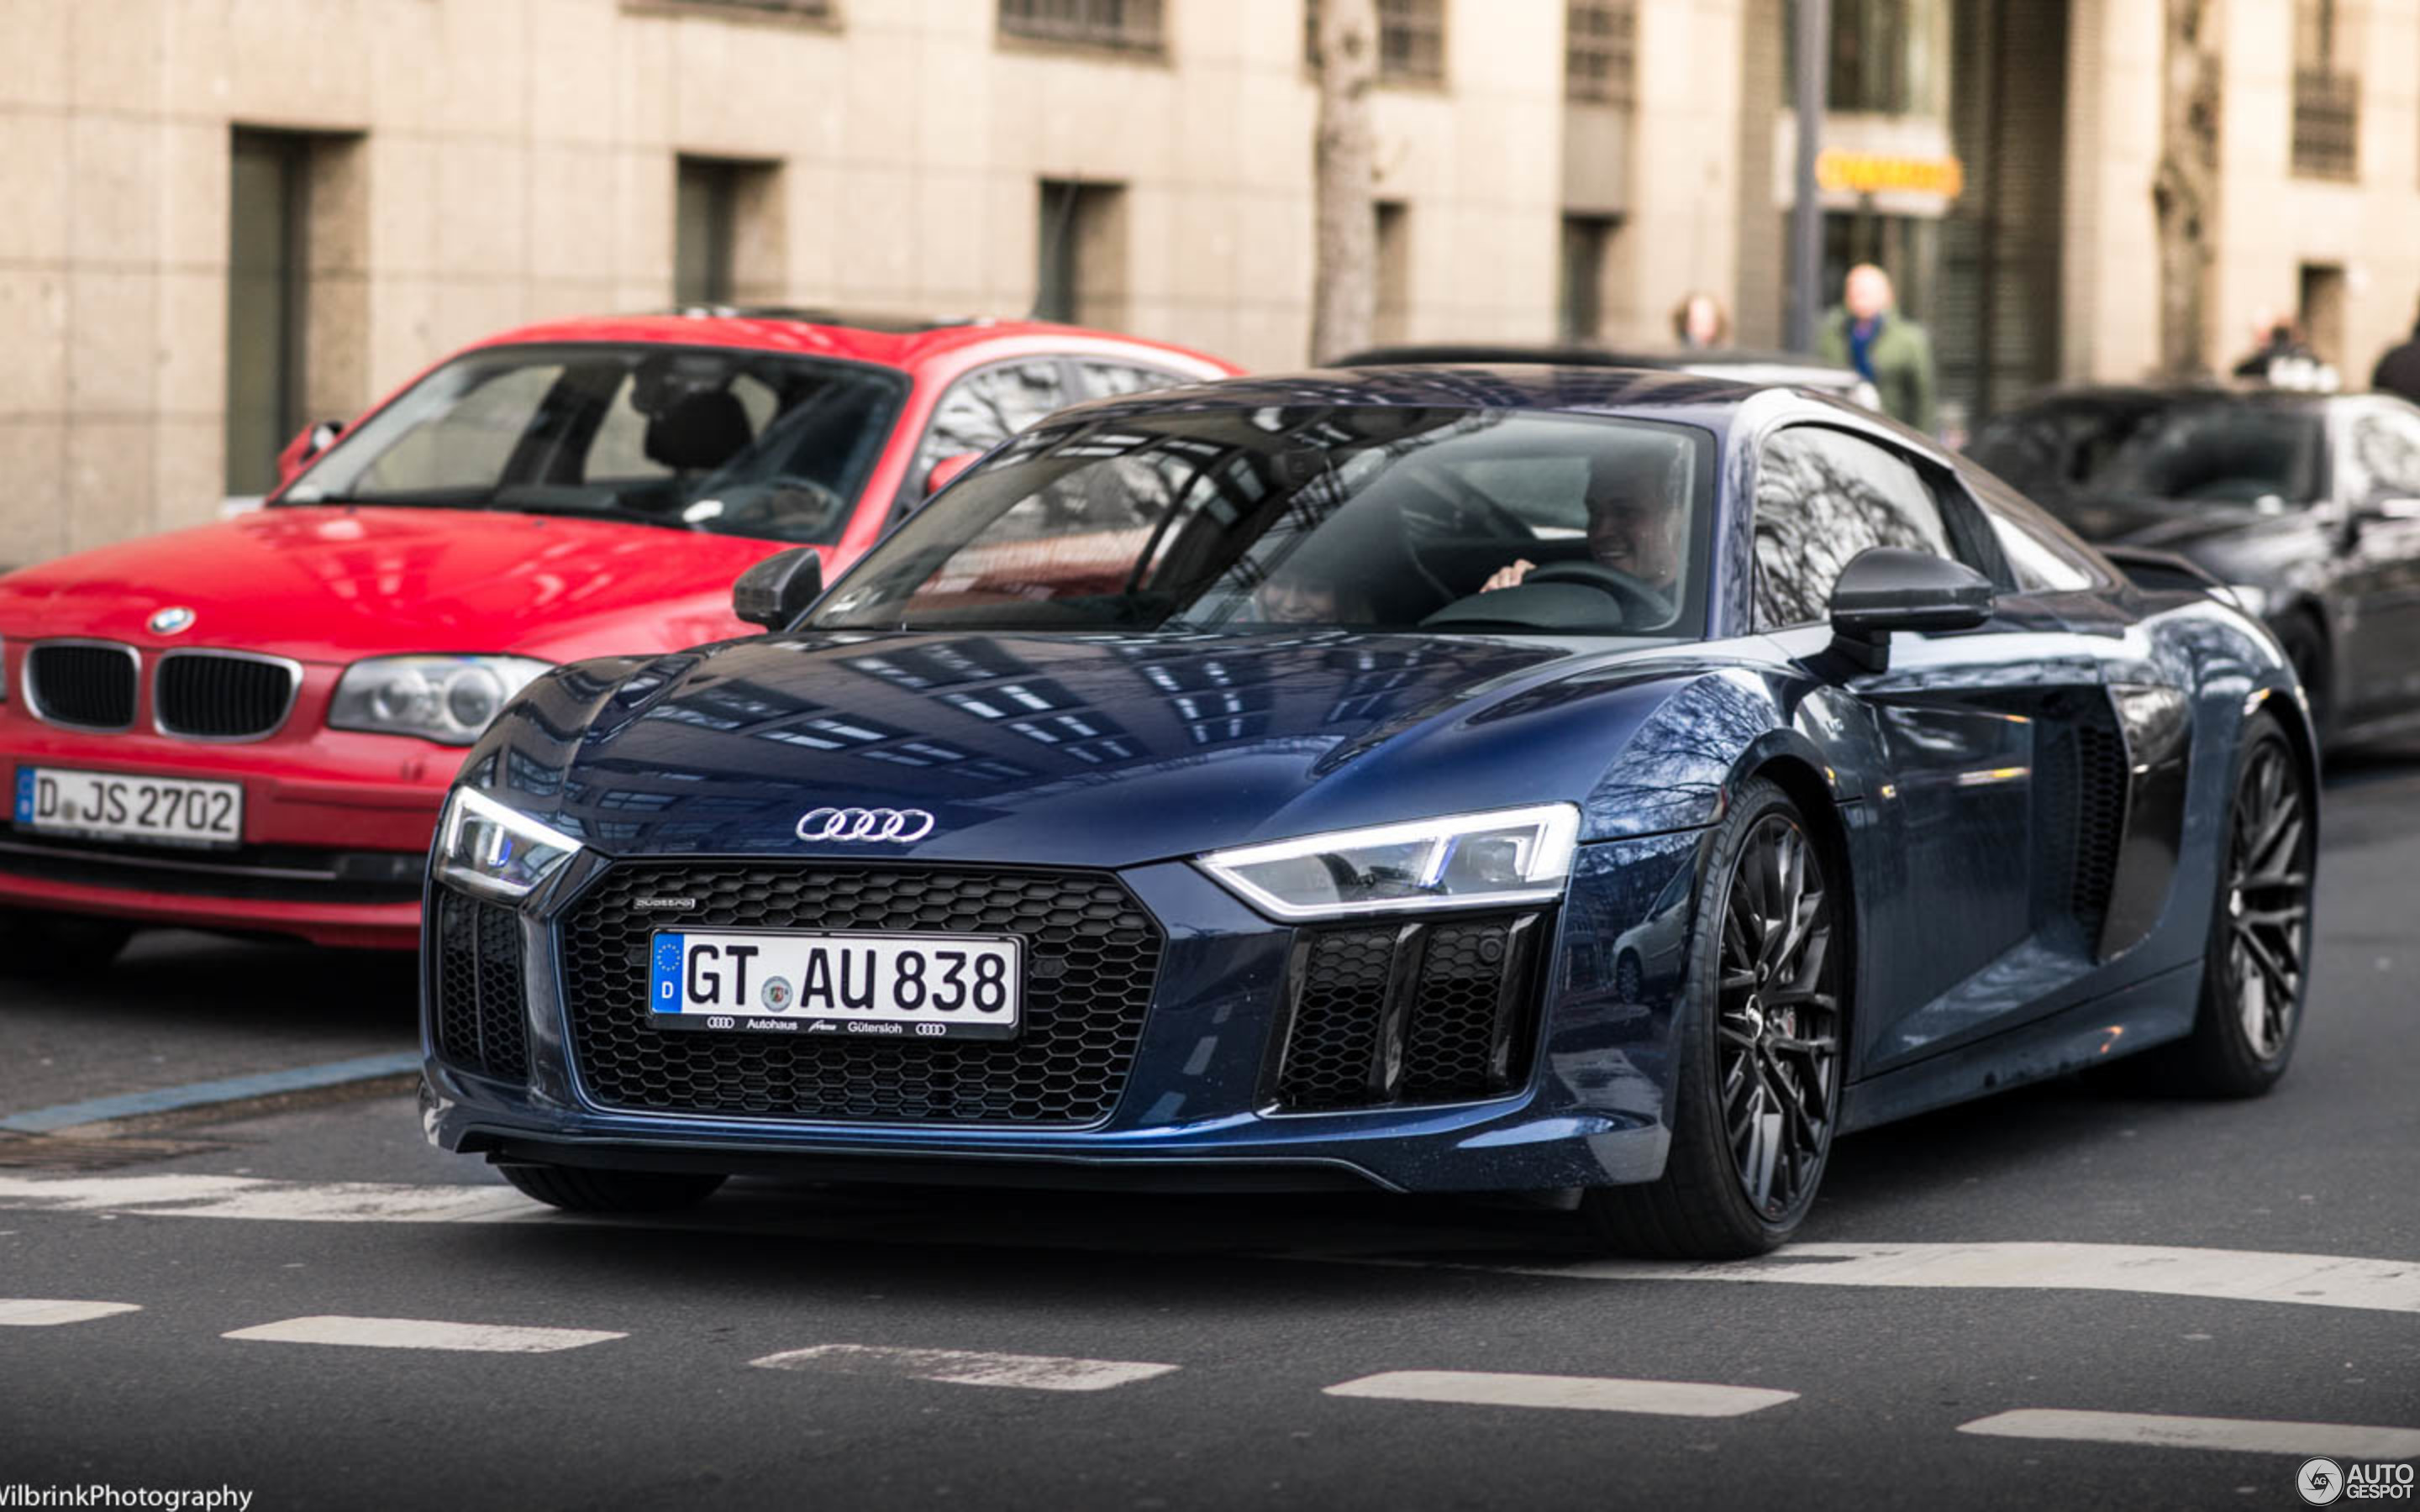 audi r8 v10 plus 2015 - 4 february 2017 - autogespot